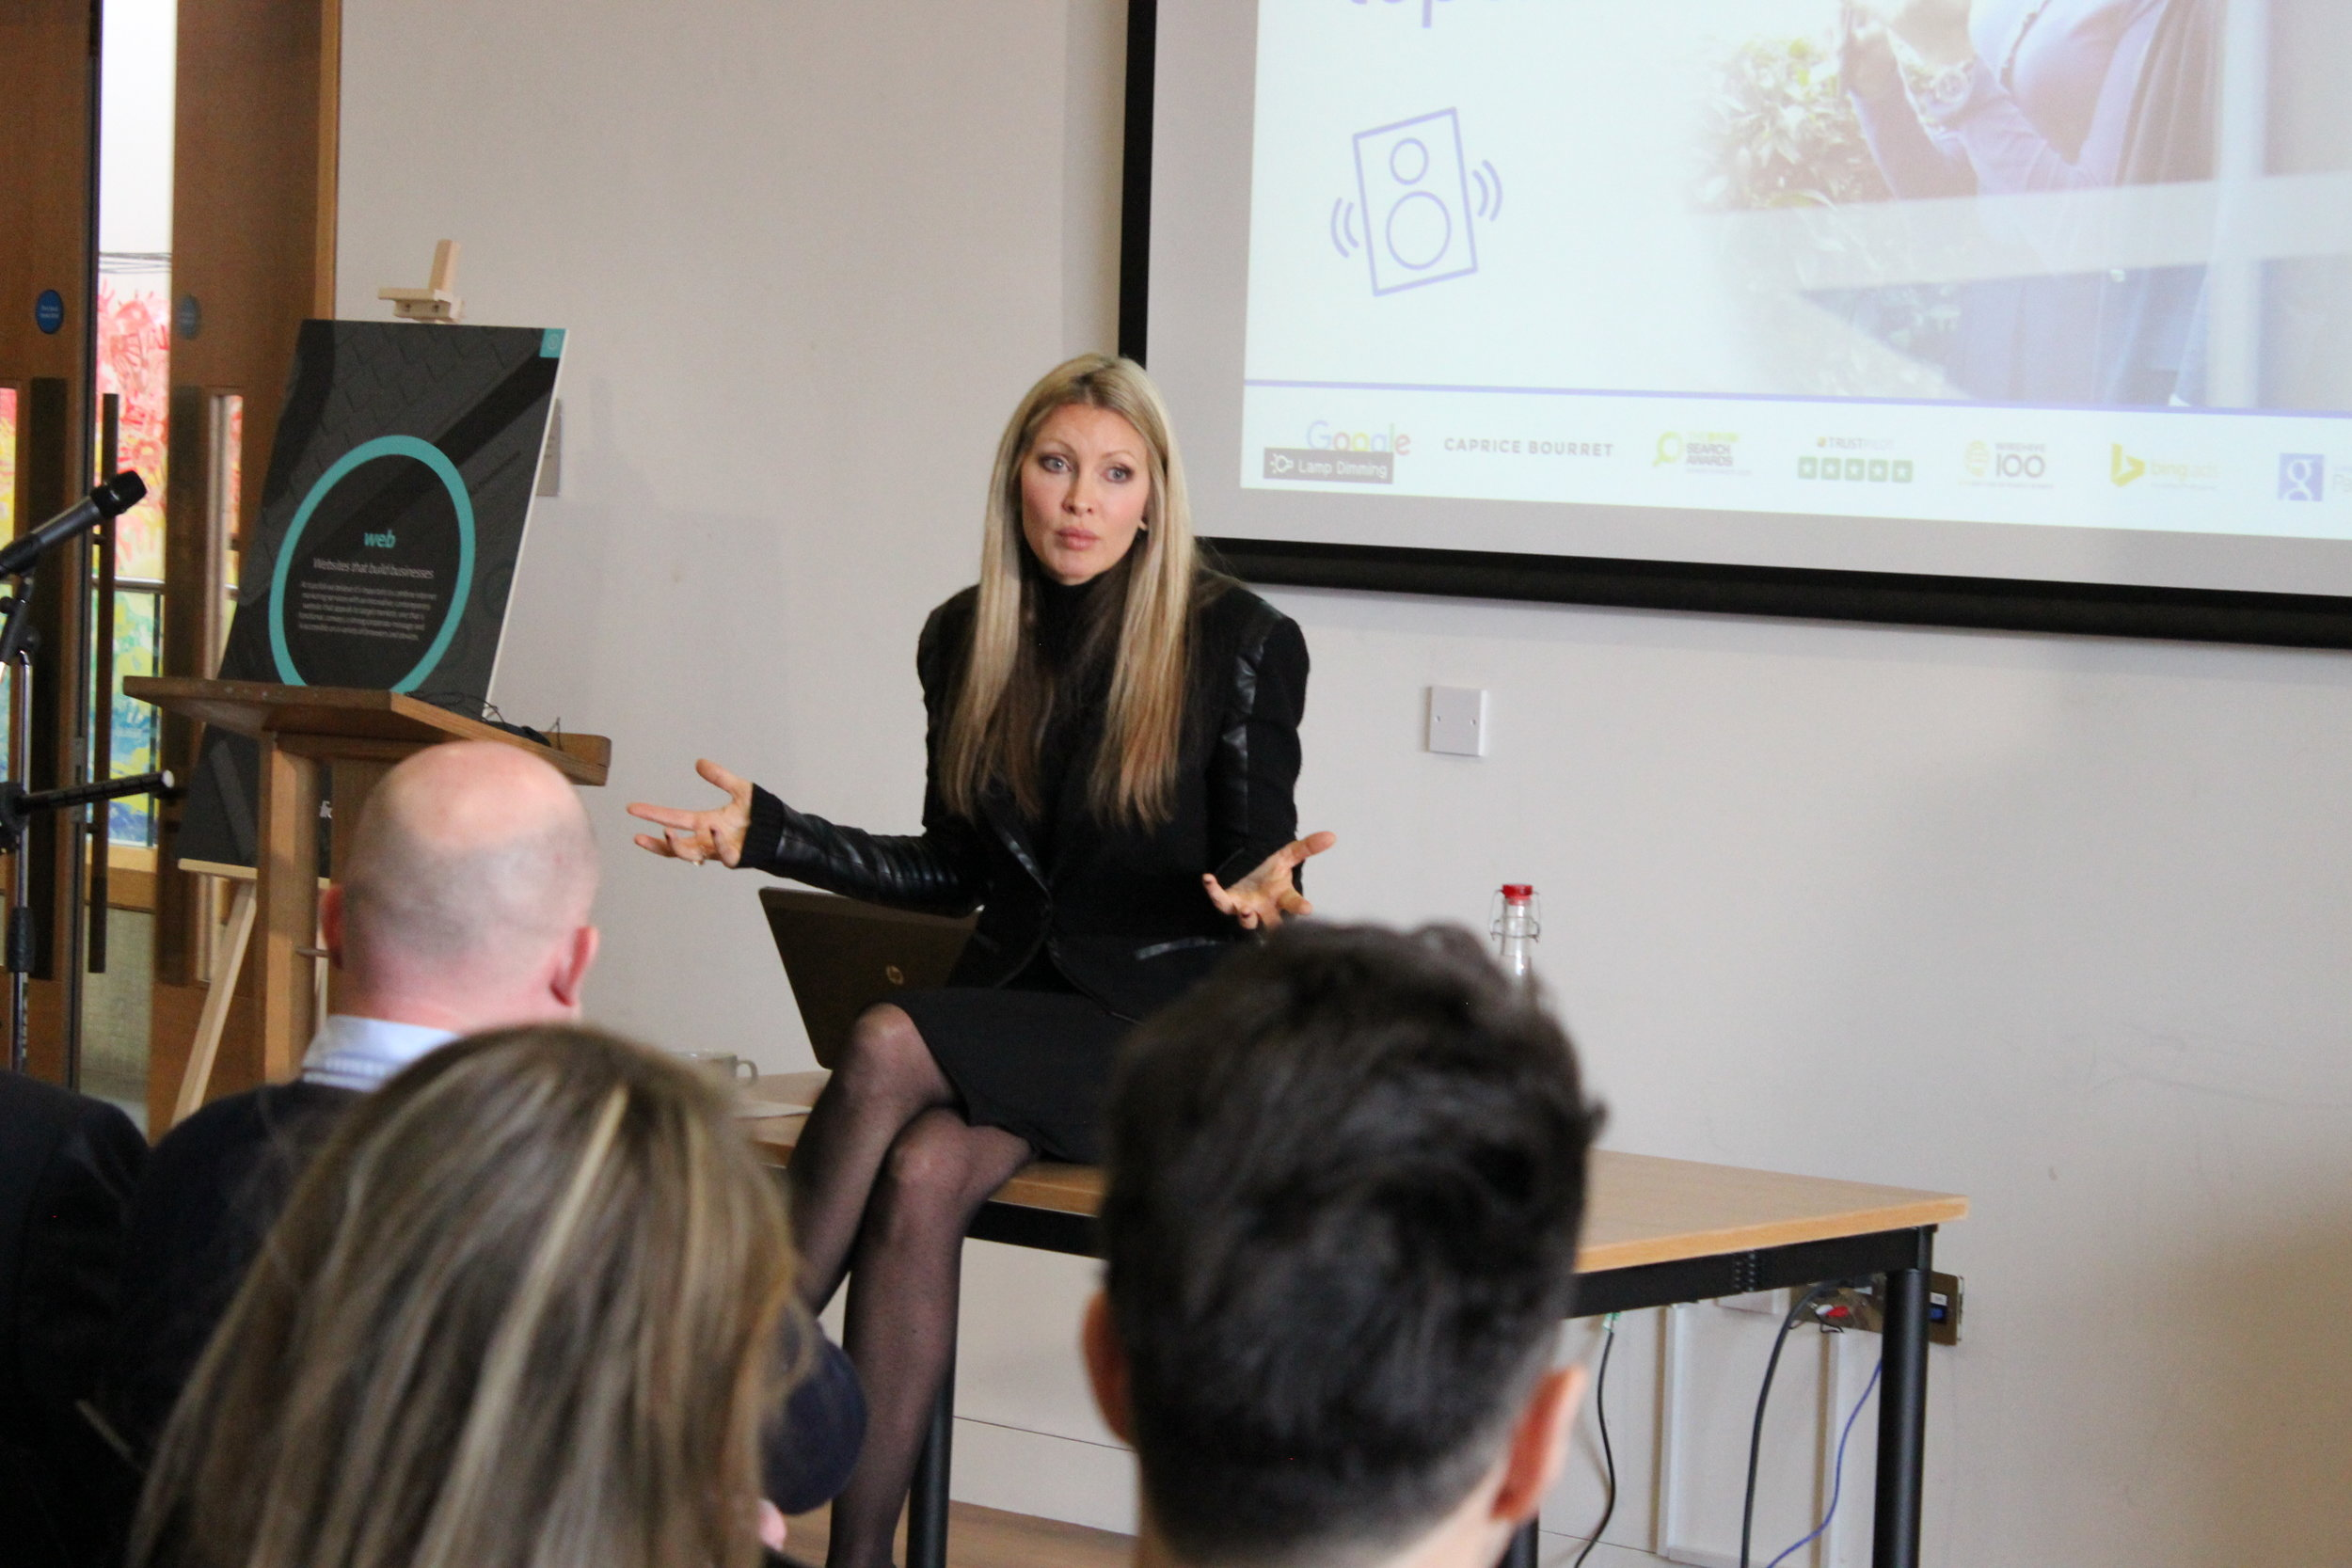 TOP CLICK CORPORATE EVENT - Caprice was the keynote speaker at the corporate event. She spoke for 1.5 hours focusing on marketing strategies for.2016